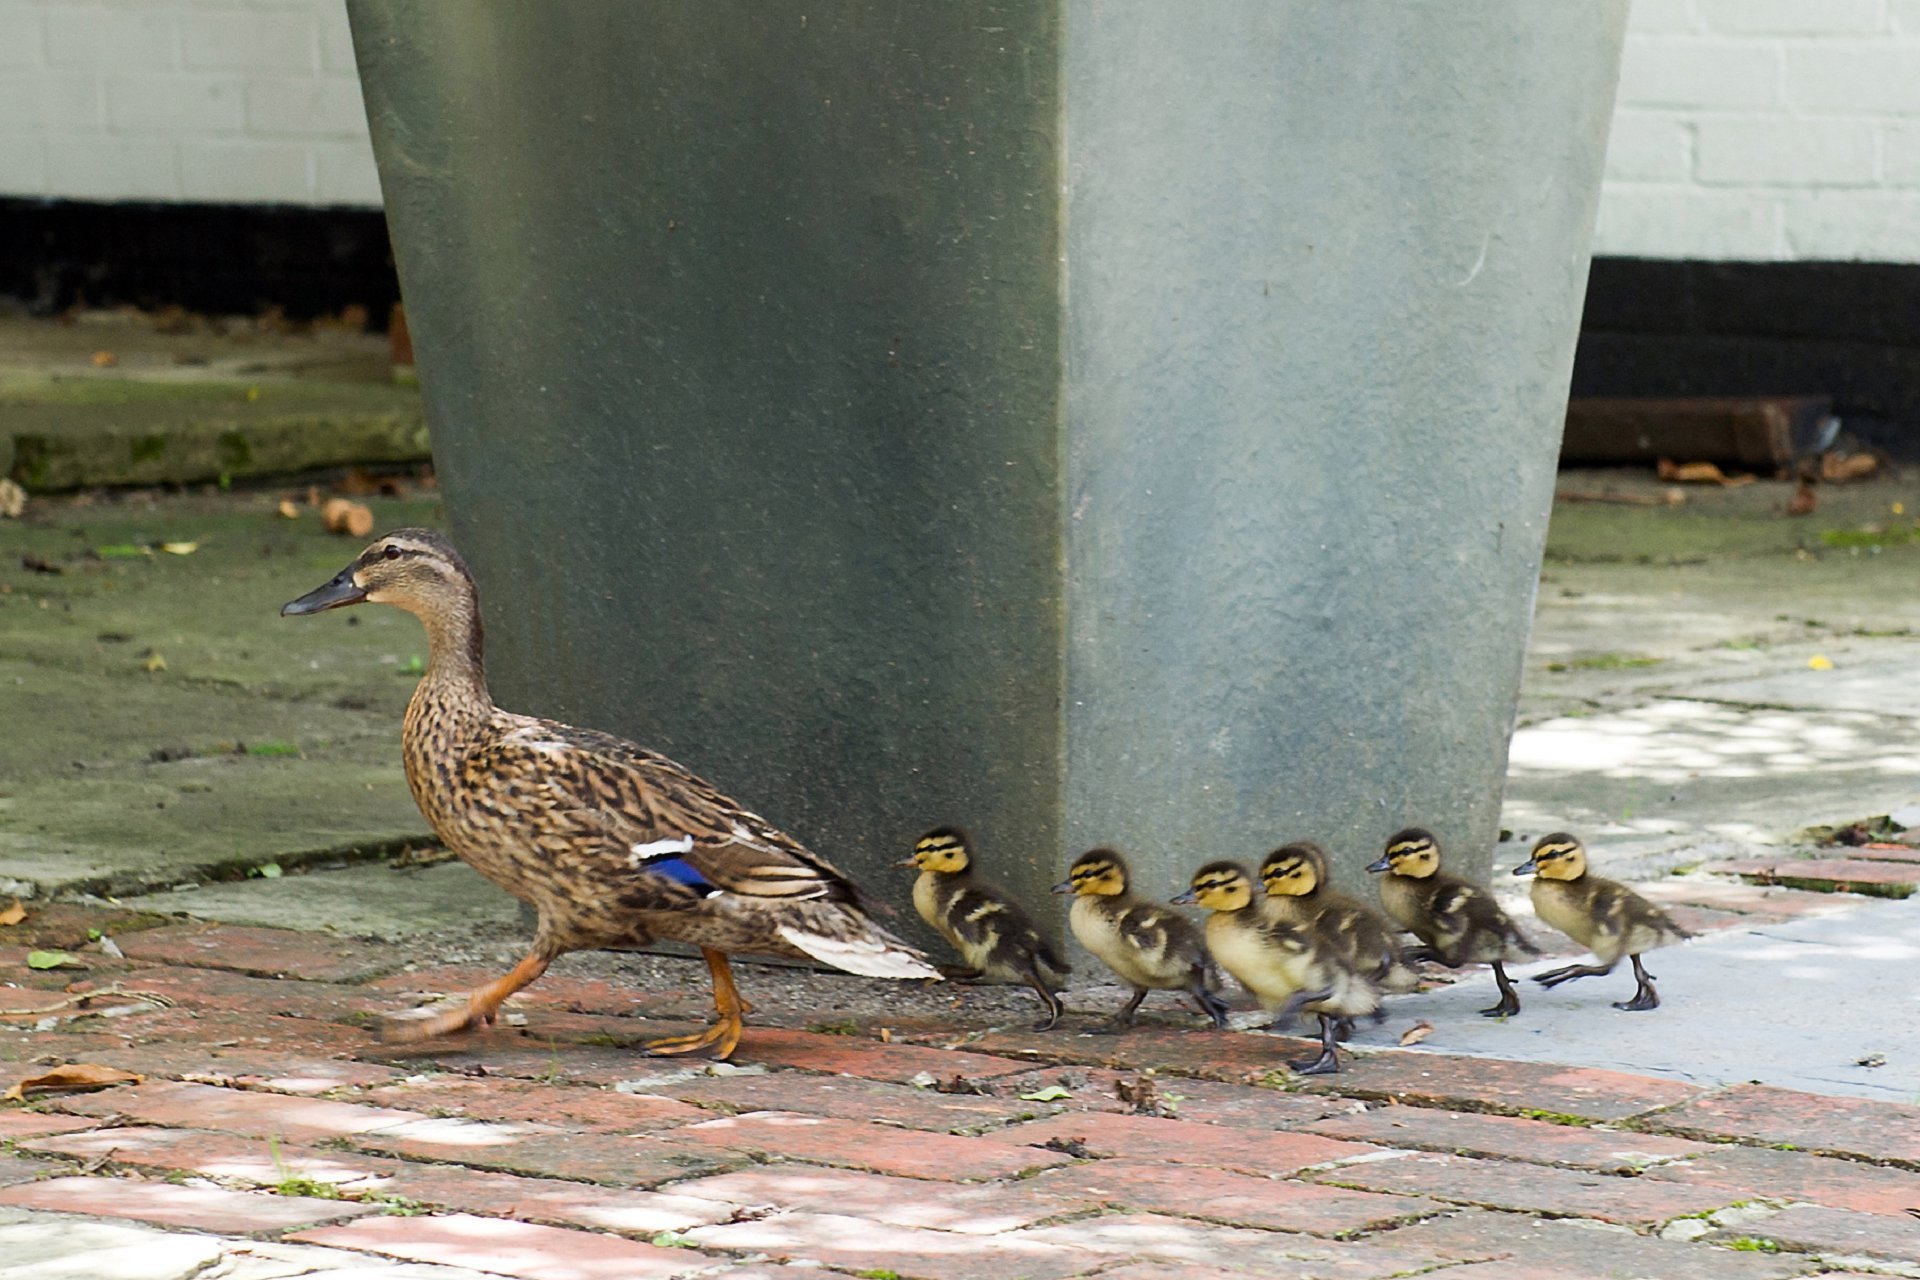 The ducks at Ghyll Manor near Horsham in West Sussex make an impromptu visit to this wedding reception